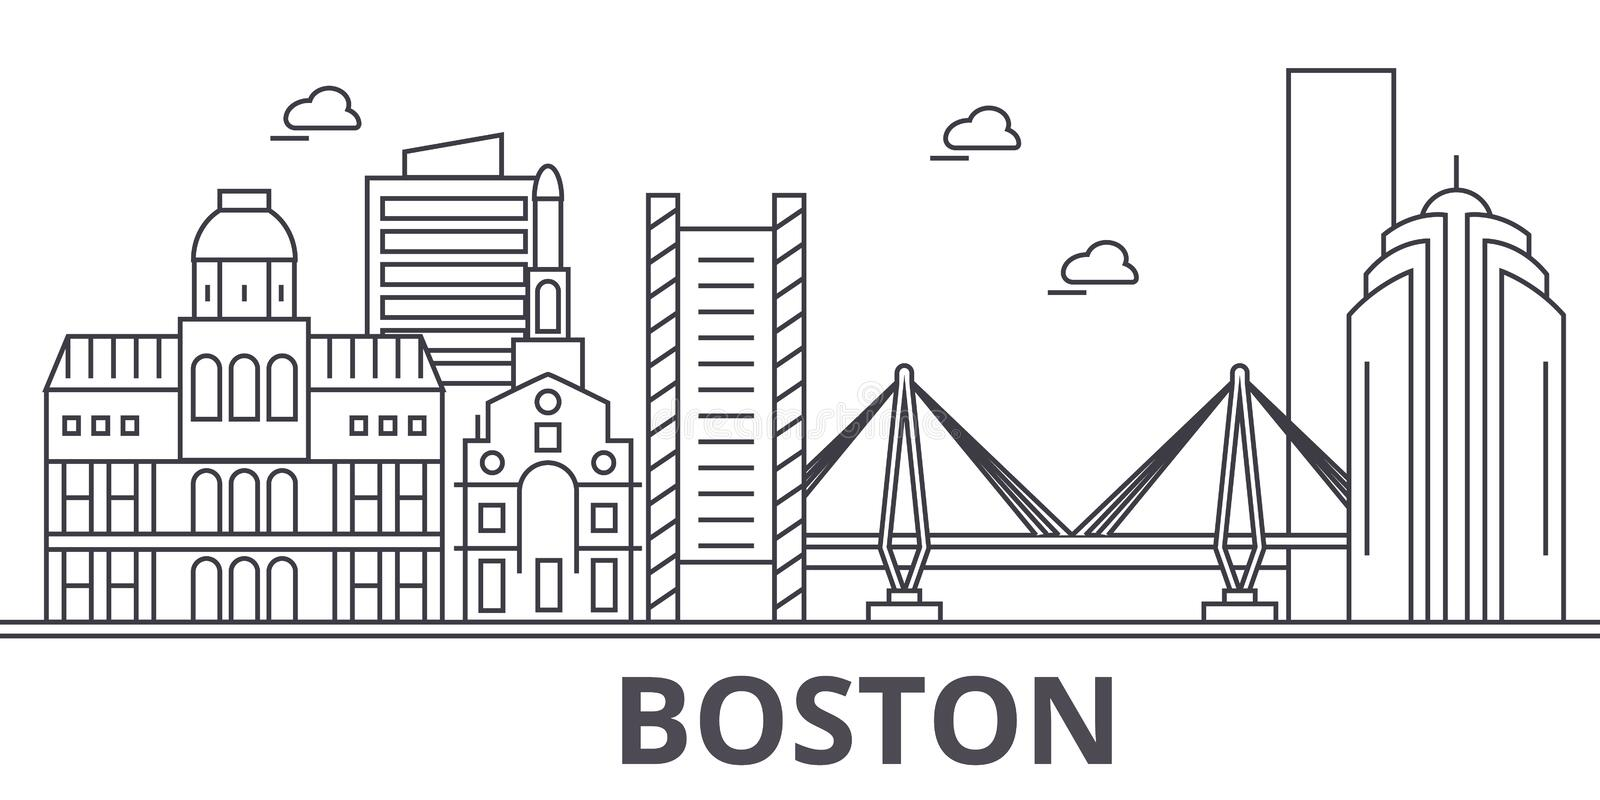 Boston architecture line skyline illustration. Linear vector cityscape with famous landmarks, city sights, design icons. Editable strokes royalty free illustration